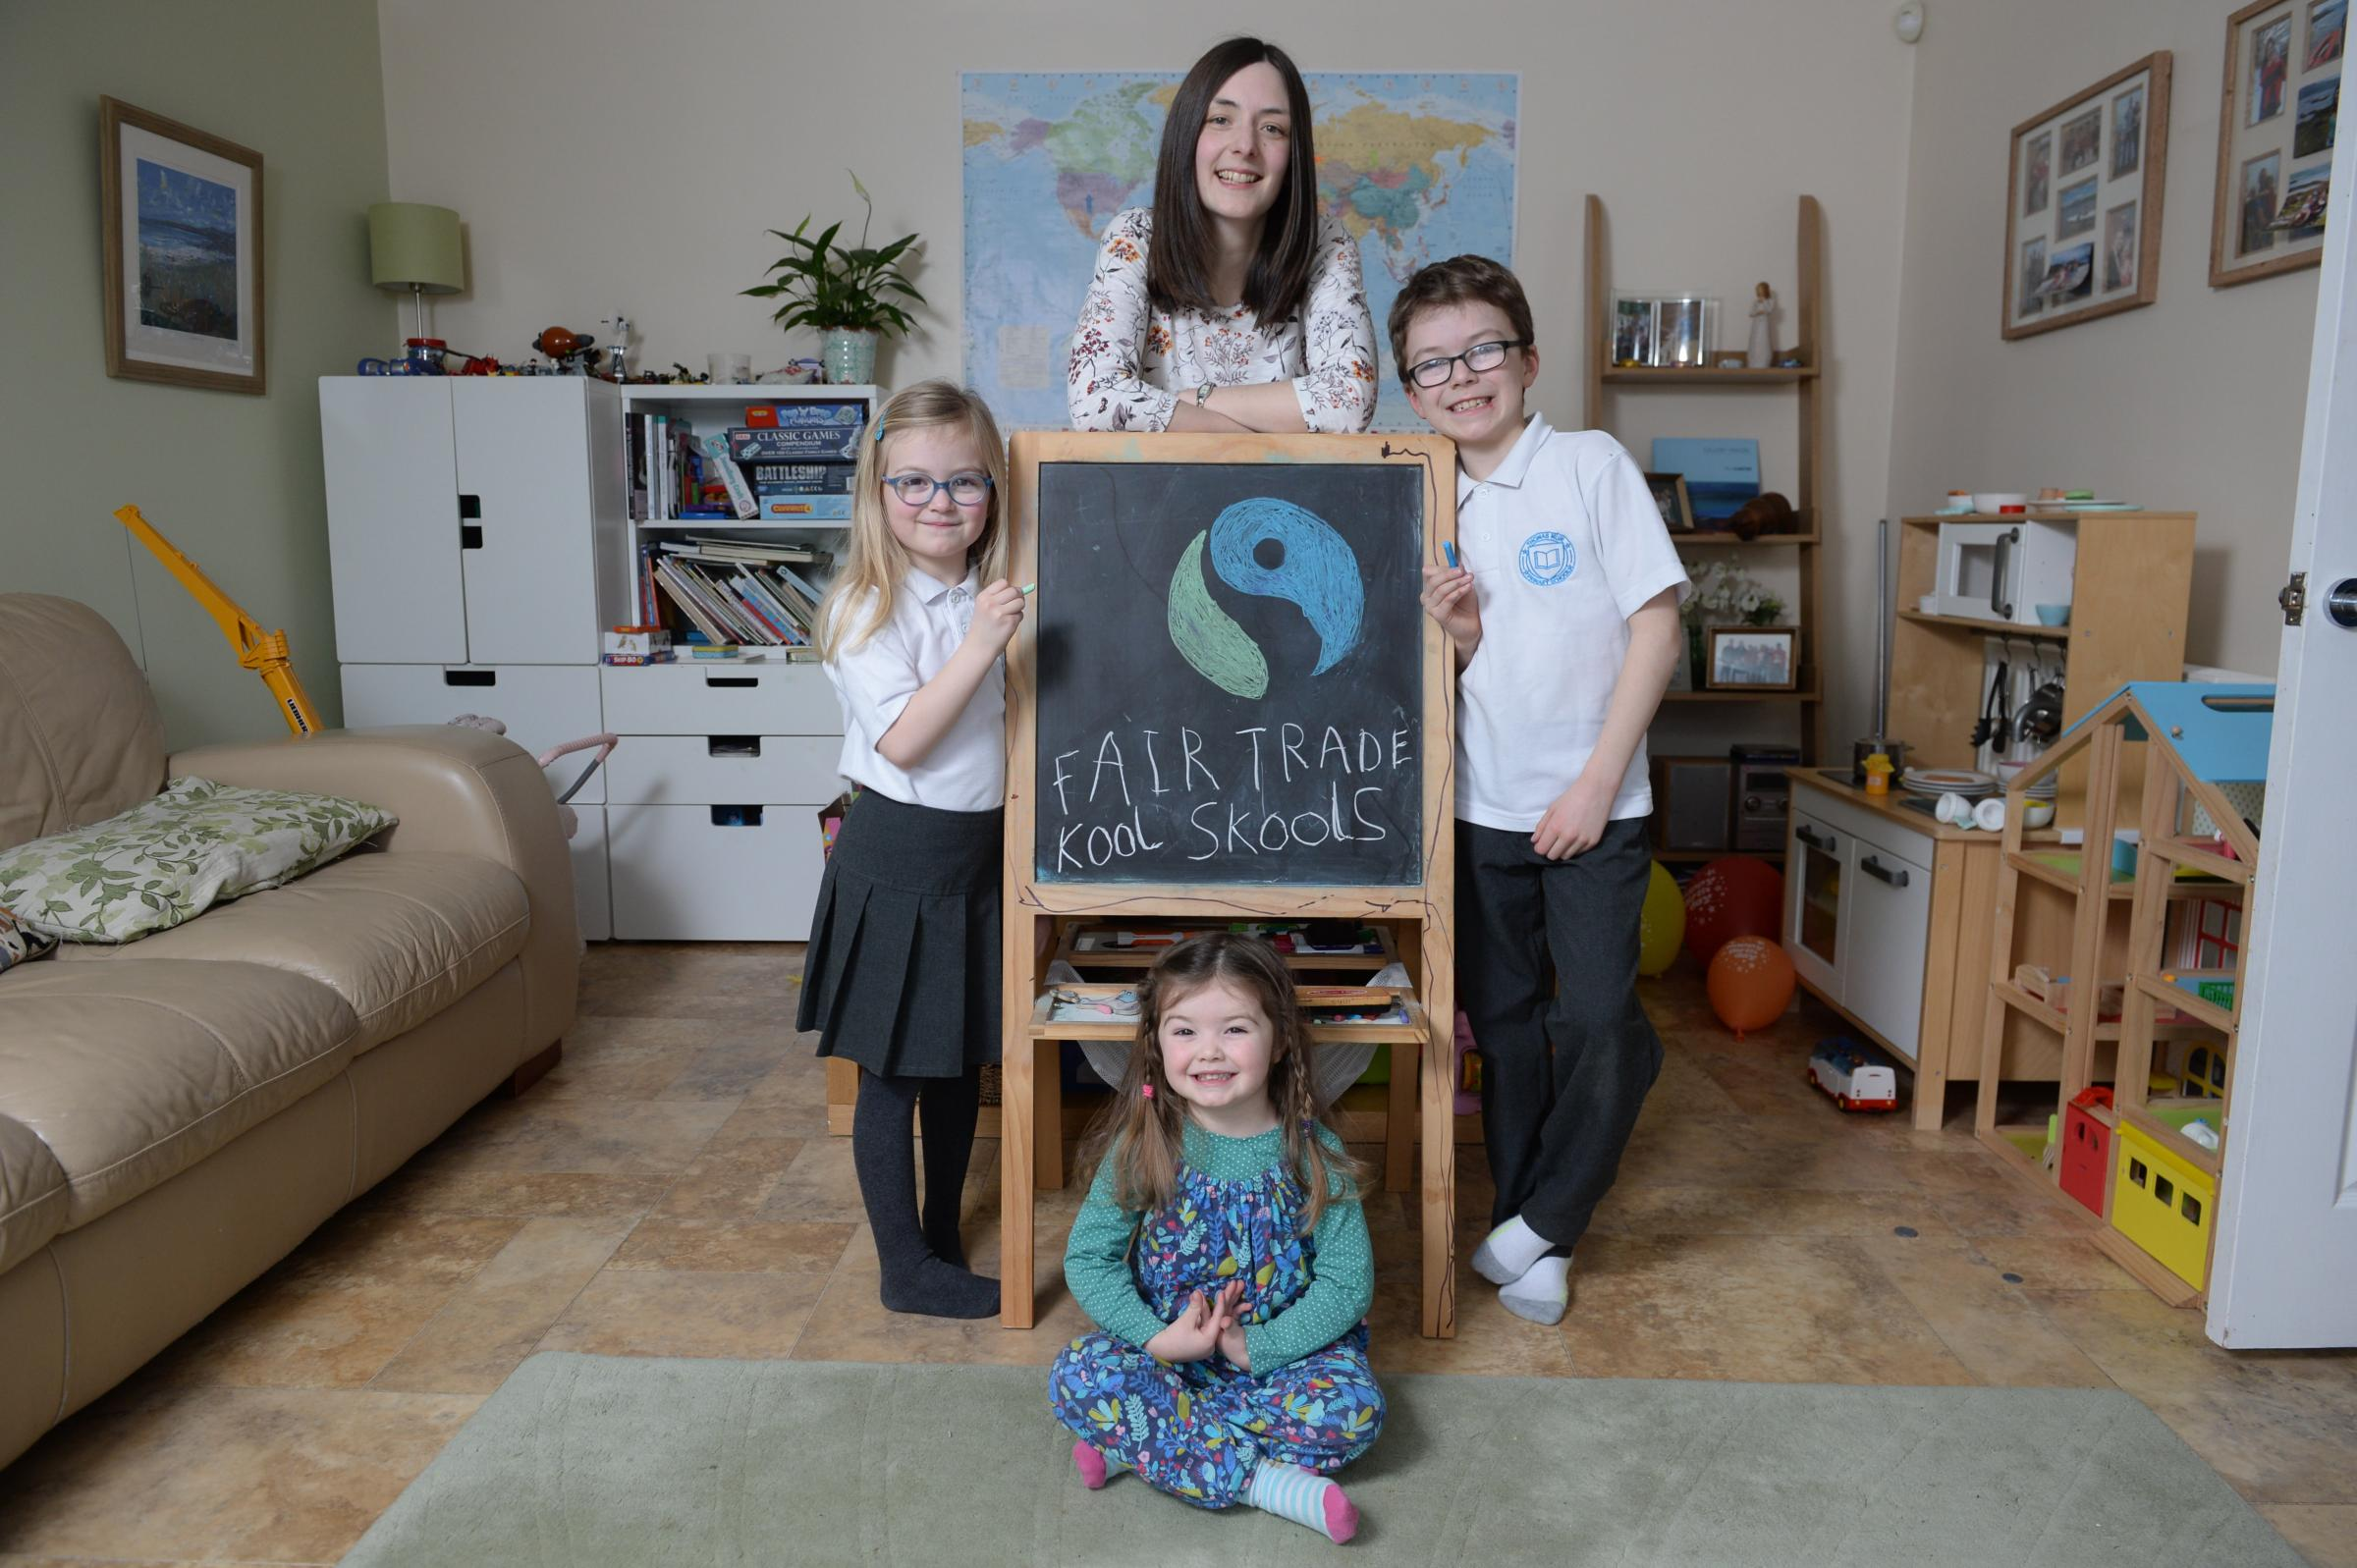 Emma White, mum of Zac (8), Sophie (5) and Lucy (3), has been working with the parent council at Thomas Muir Primary School in Bishopbriggs and supplier Koolschools to provide fairtrade uniform options - pic Kirsty Anderson